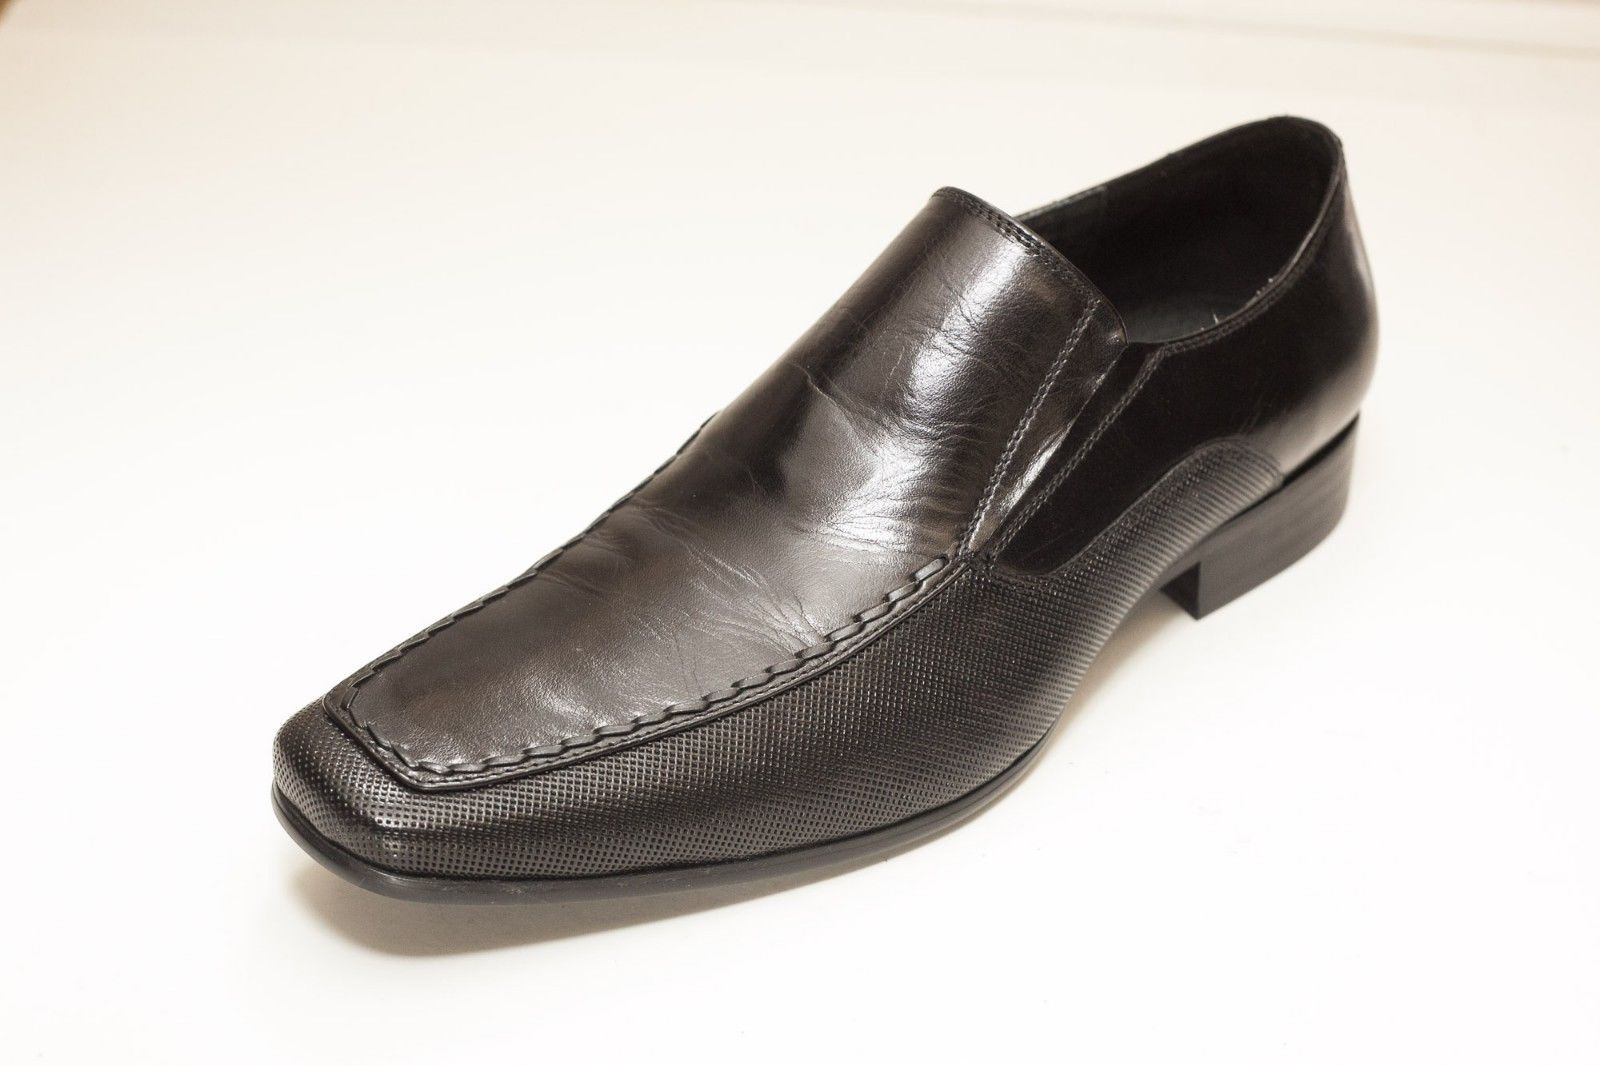 4a1570f1e0d Steve Madden Size 11 Black Slip On Loafer and 50 similar items